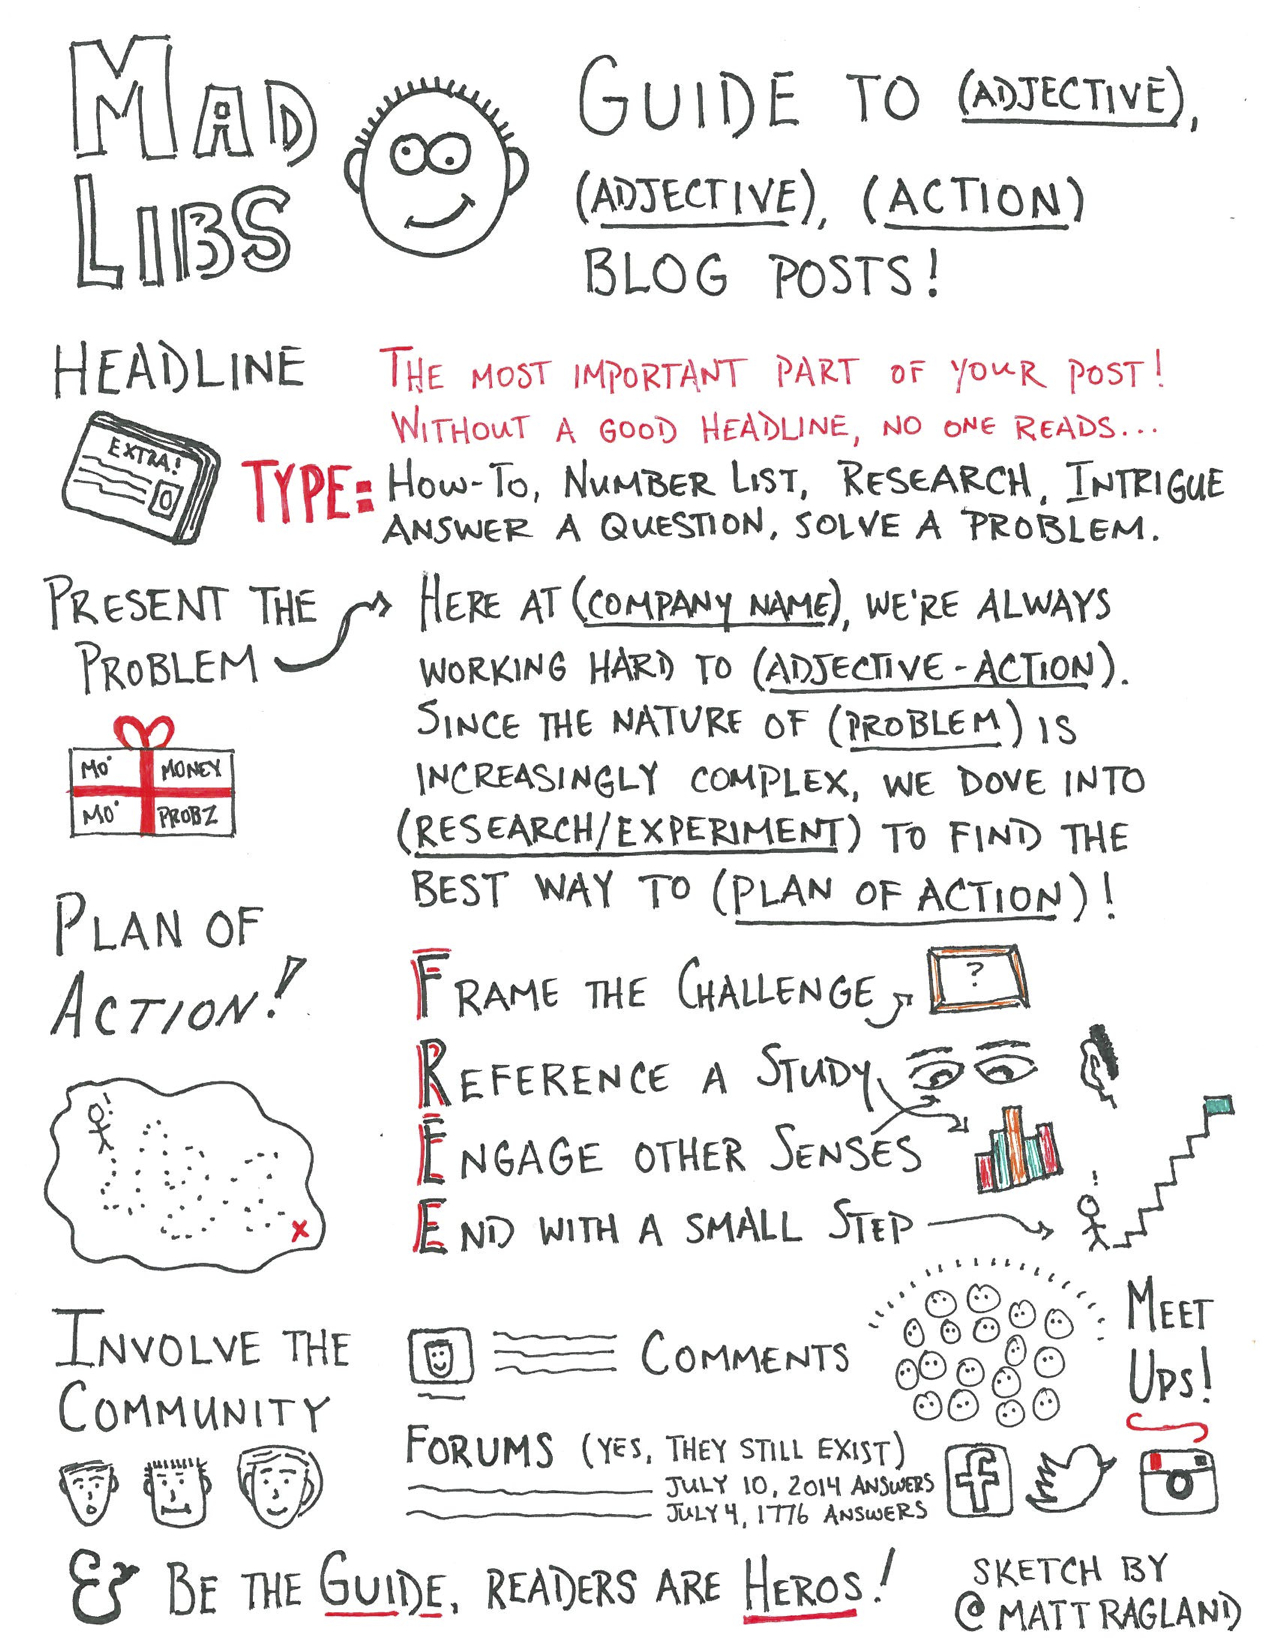 The Mad Libs Guide To Adjective Adjective Action Blog Posts